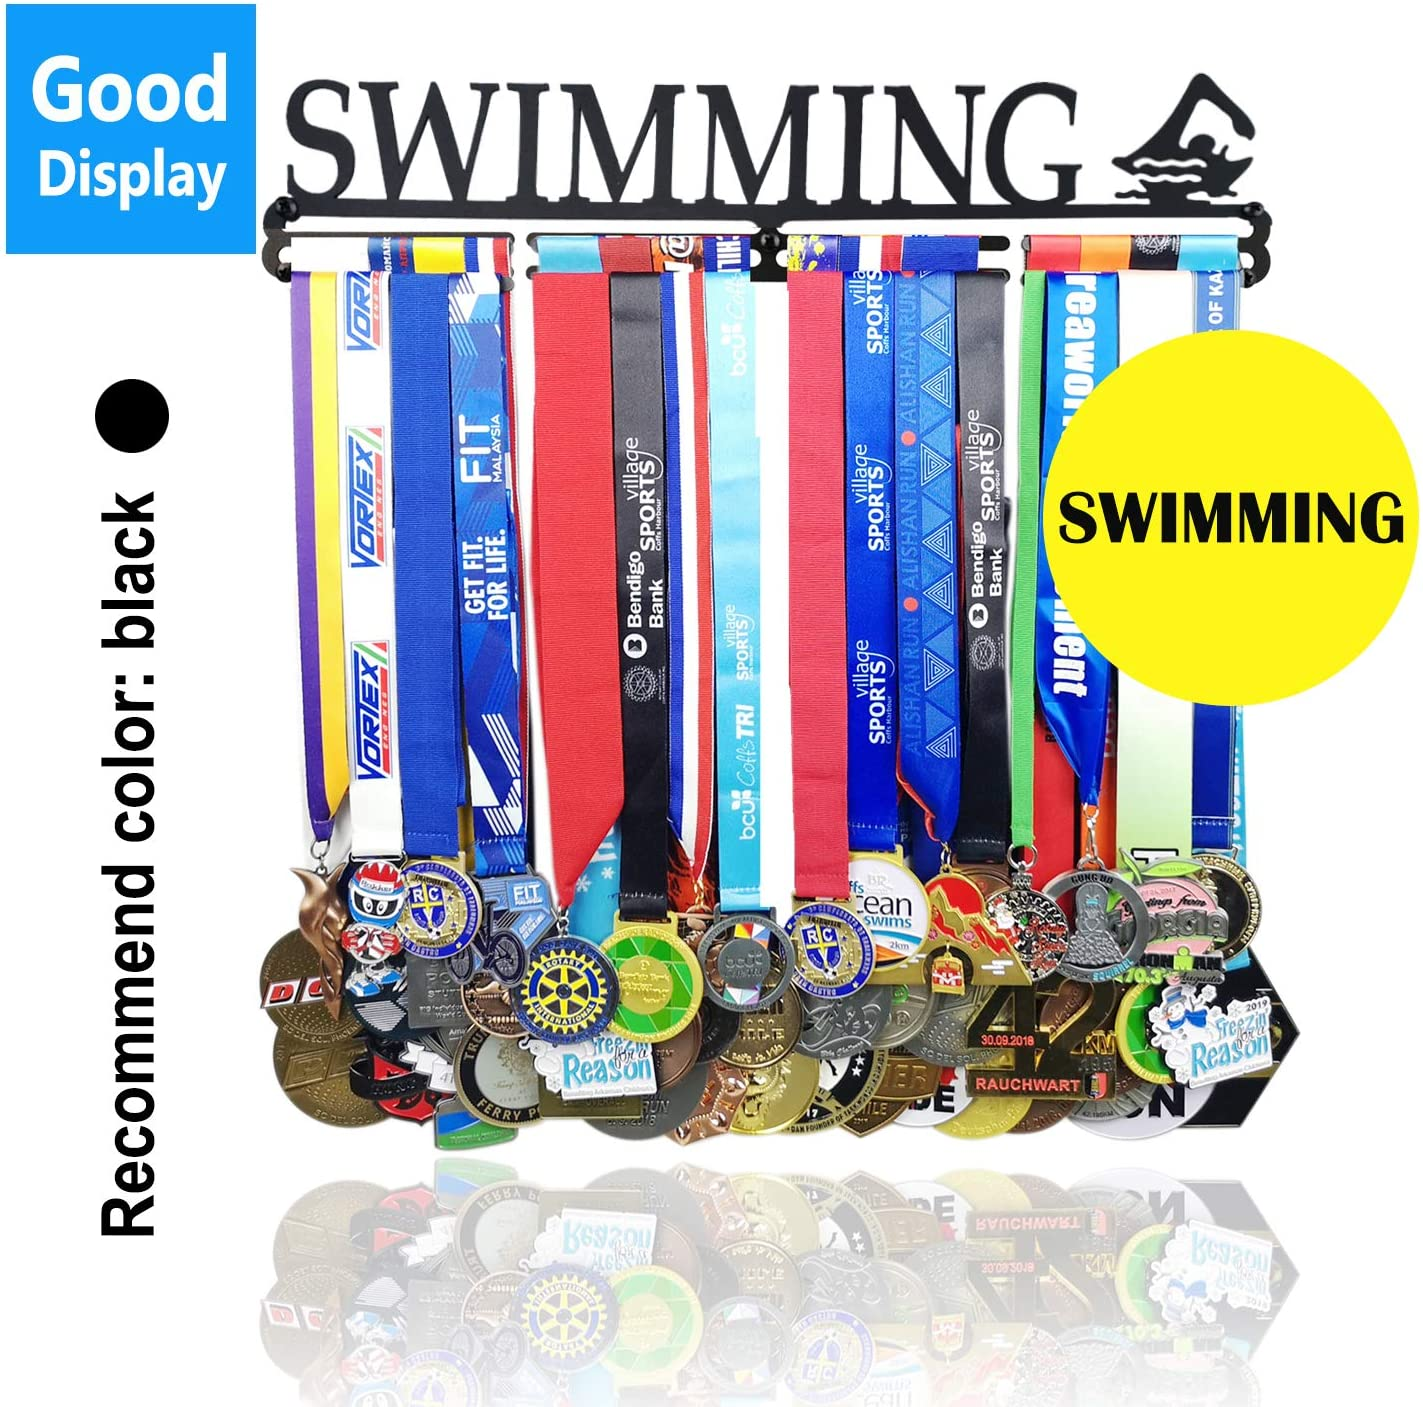 Lapetale Fashion Medal Holder Display Hanger Rack Frame - Sturdy Wall Mount Over 40 Medals Easy to Install